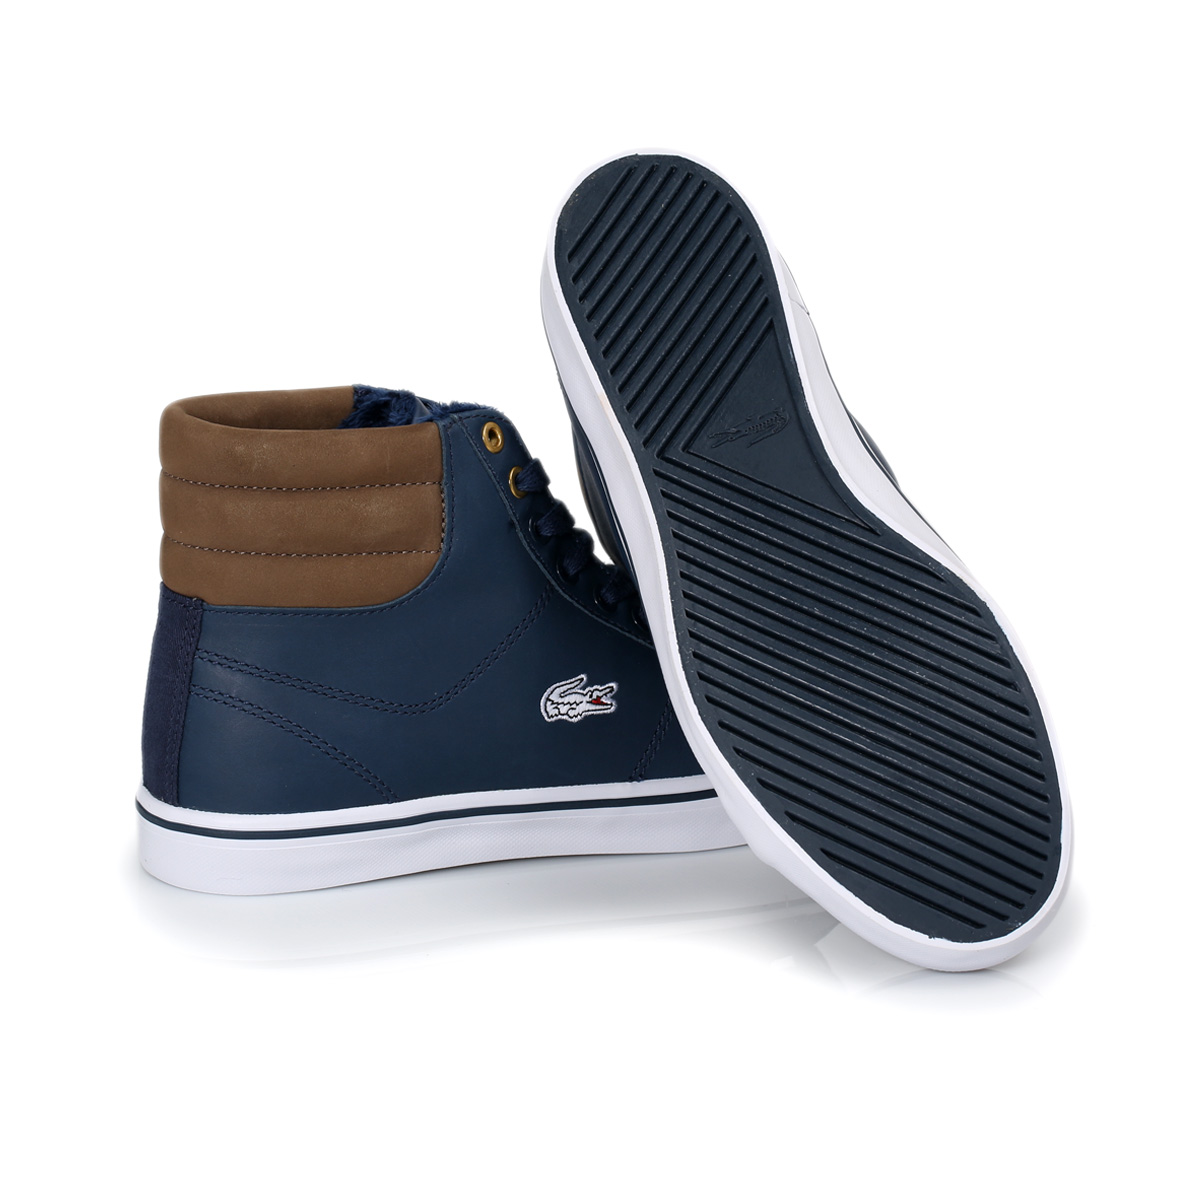 Simple Lacoste Sneakers Women Lacoste Mens Sneakers And